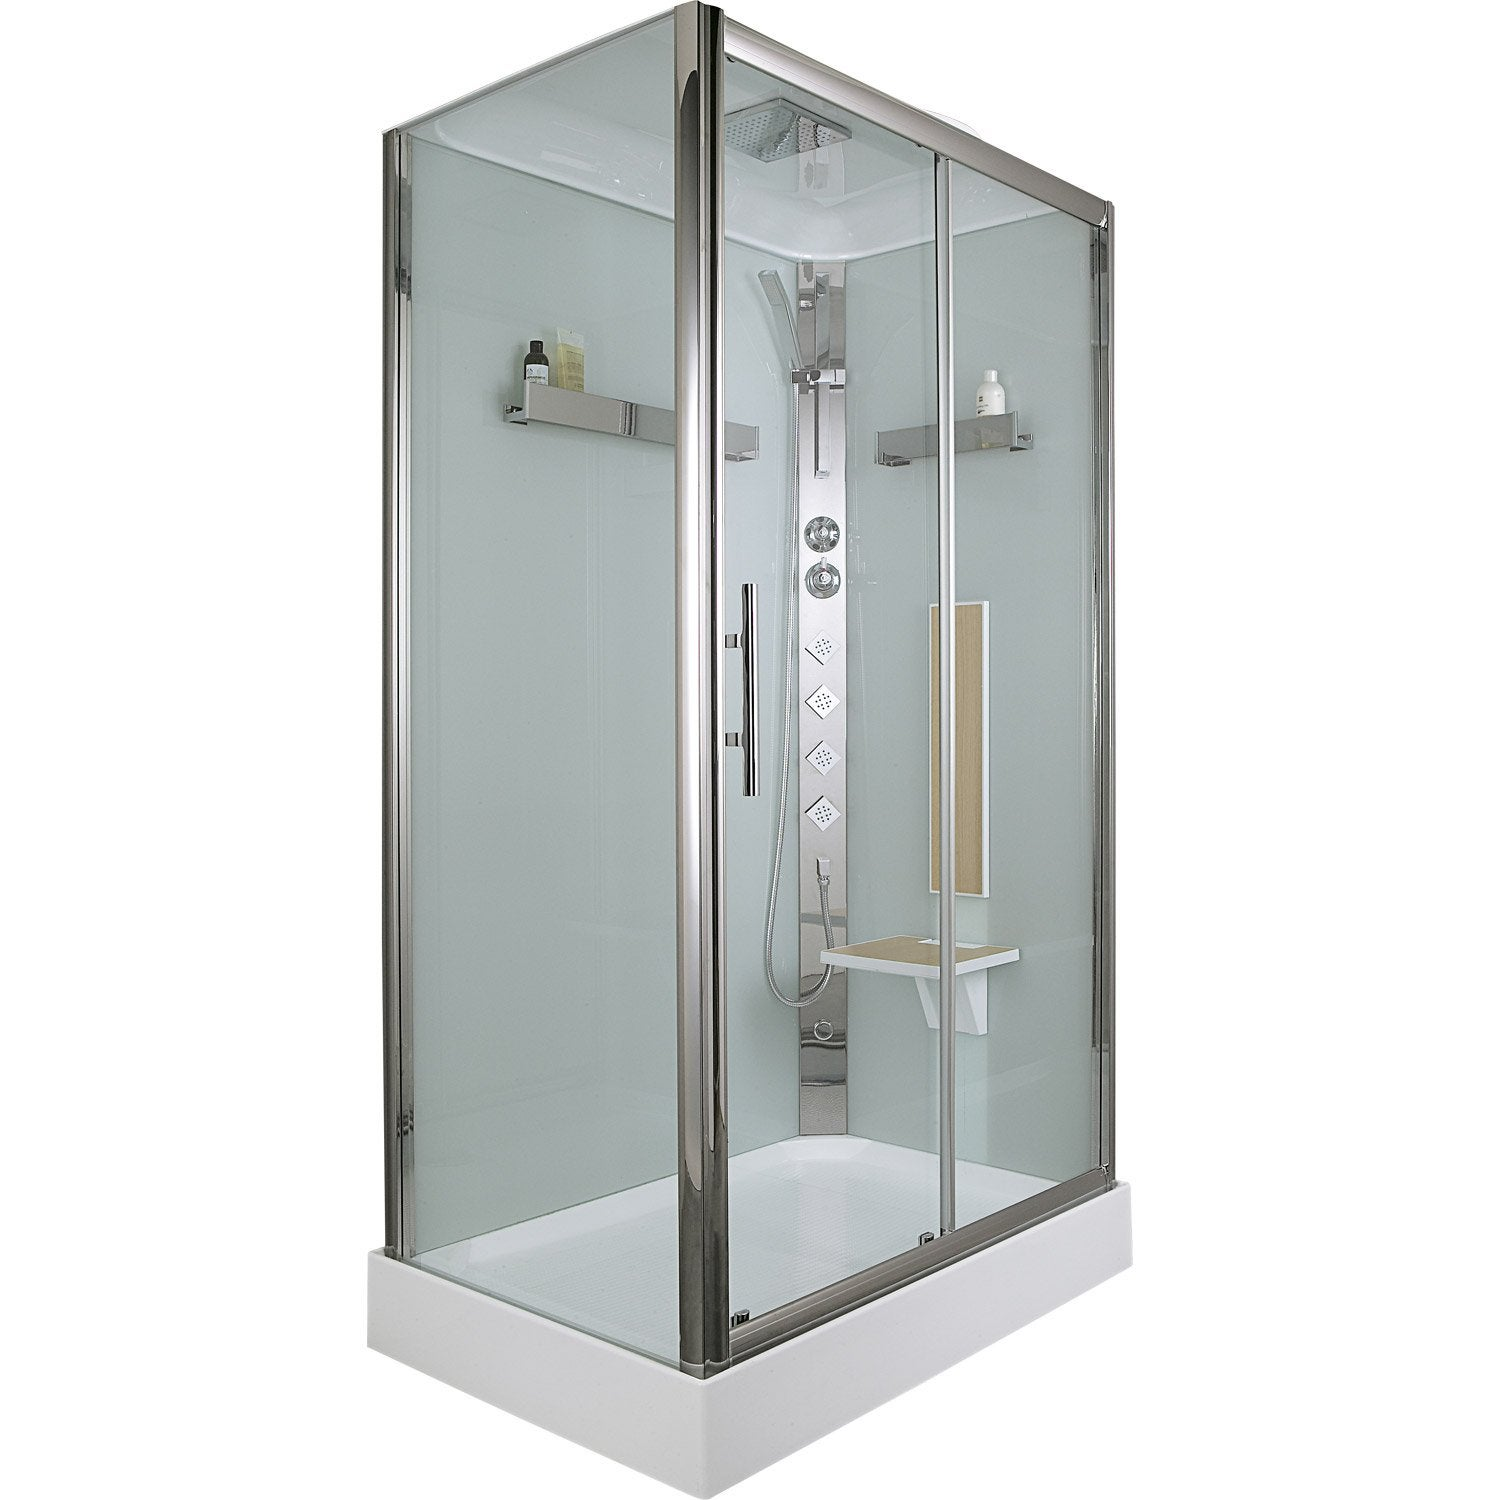 Cabine de douche douche leroy merlin review ebooks - Baignoire douche leroy merlin ...